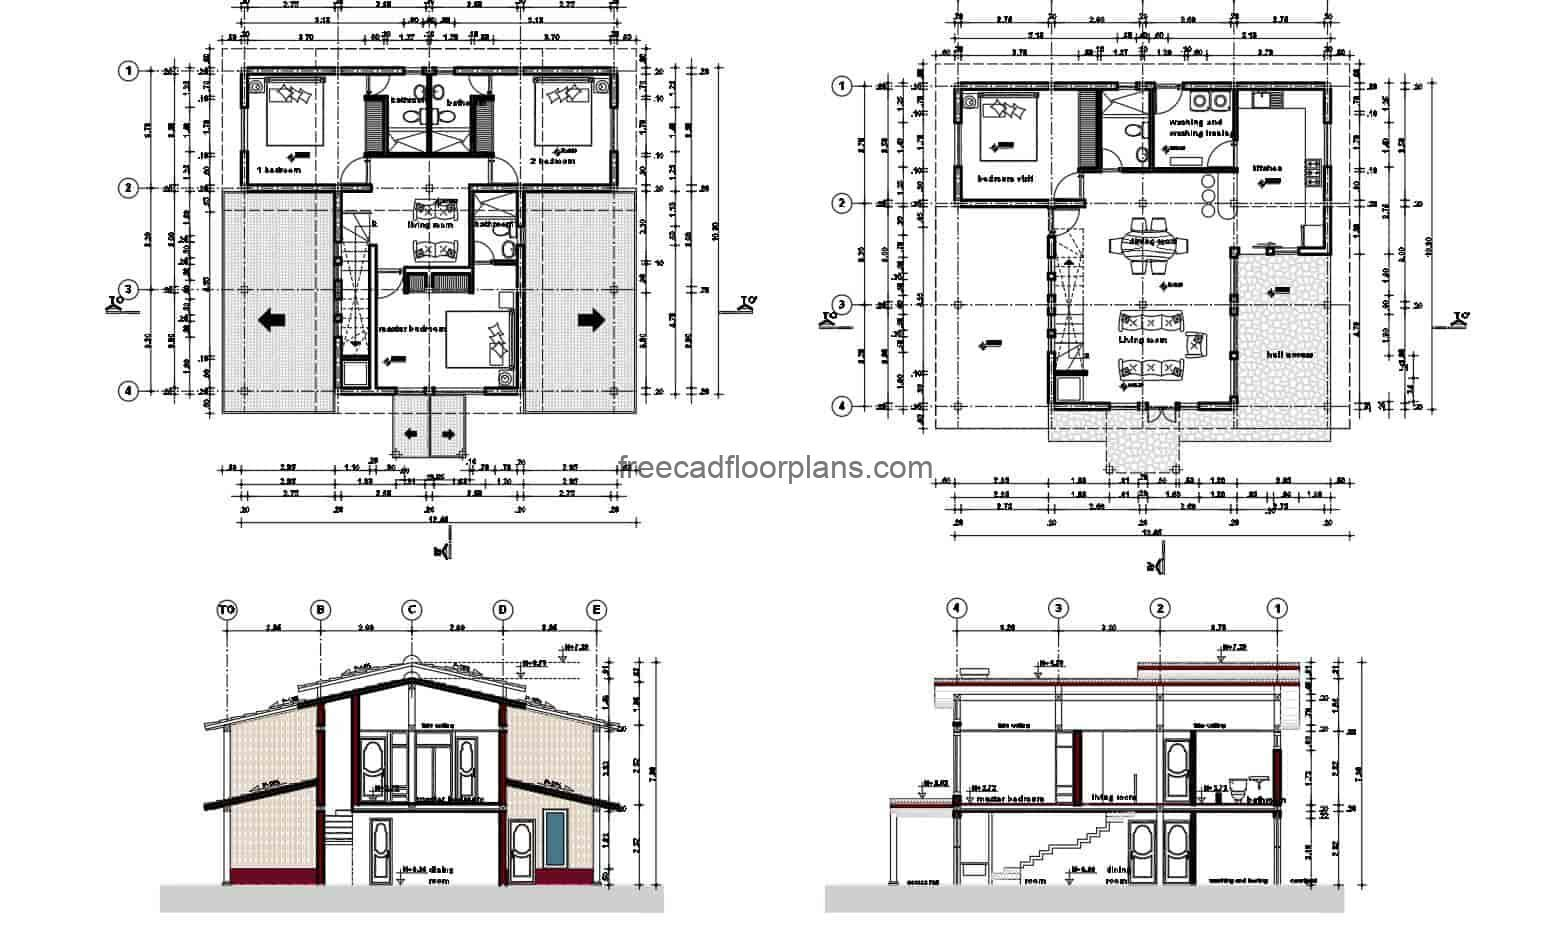 Architectural plans for a two-level country house with three bedrooms, front wood cladding, dimensional plans, electrical, sanitary, elevation sections. Overall plan, country house with side and front terraces. Blueprints for free download in Autocad DWG format, editable DWG interior blocks.